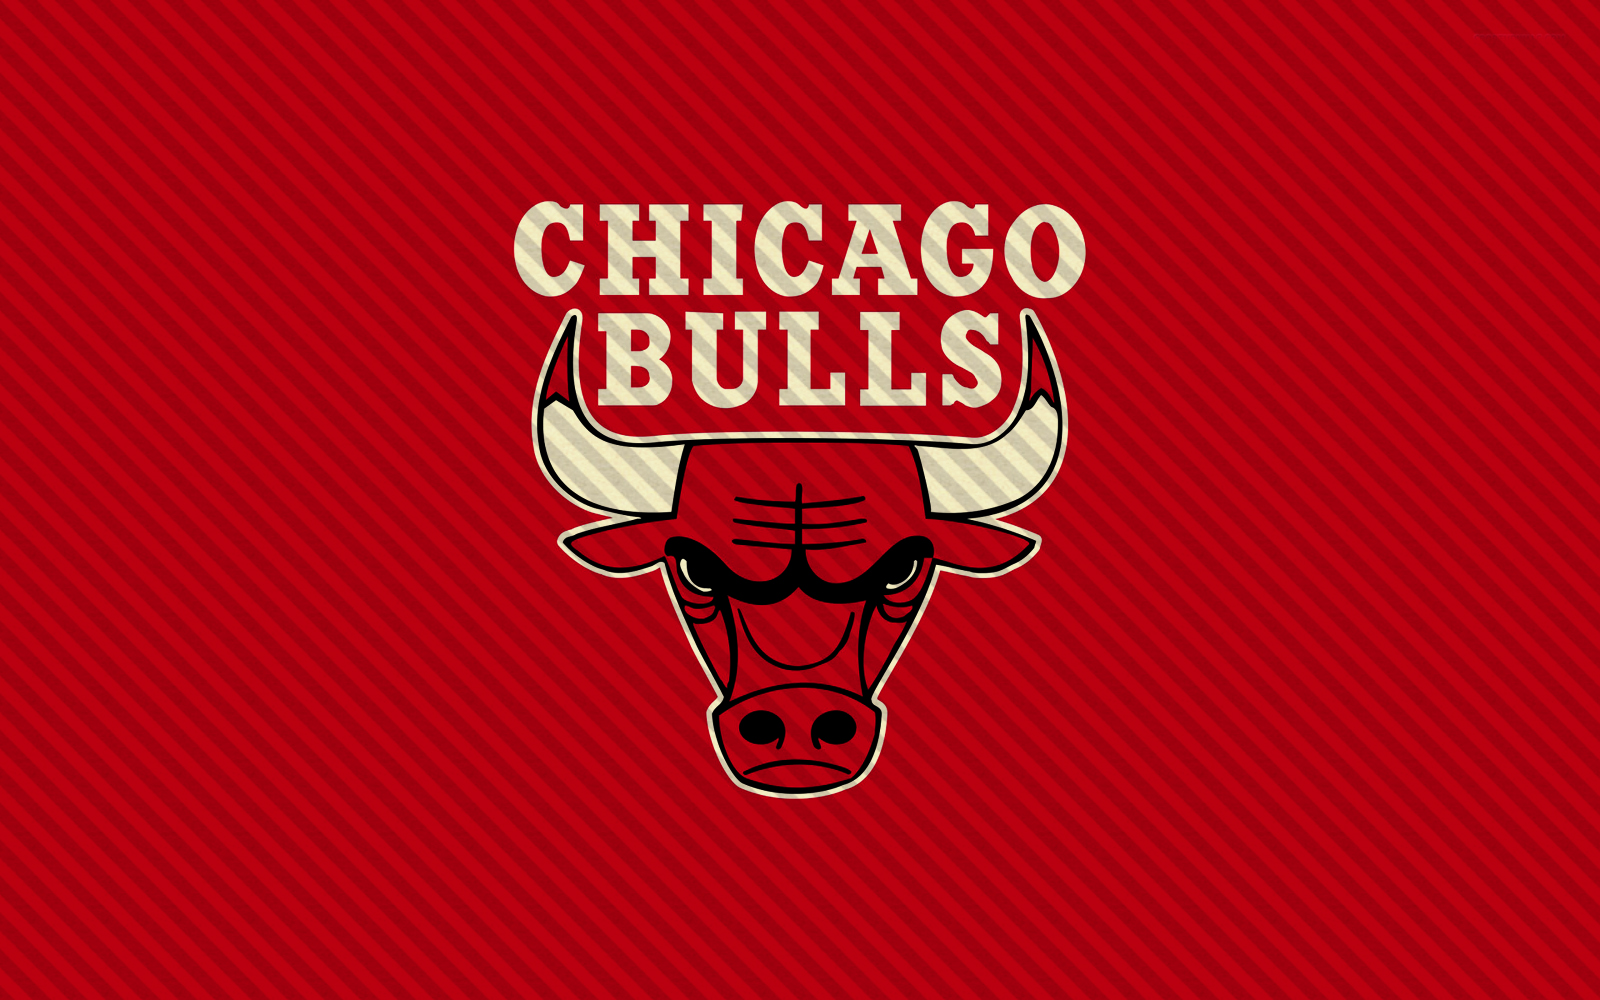 Chicago Bulls Logo Red Background Lines HD Wallpaper NBA Basketball Team